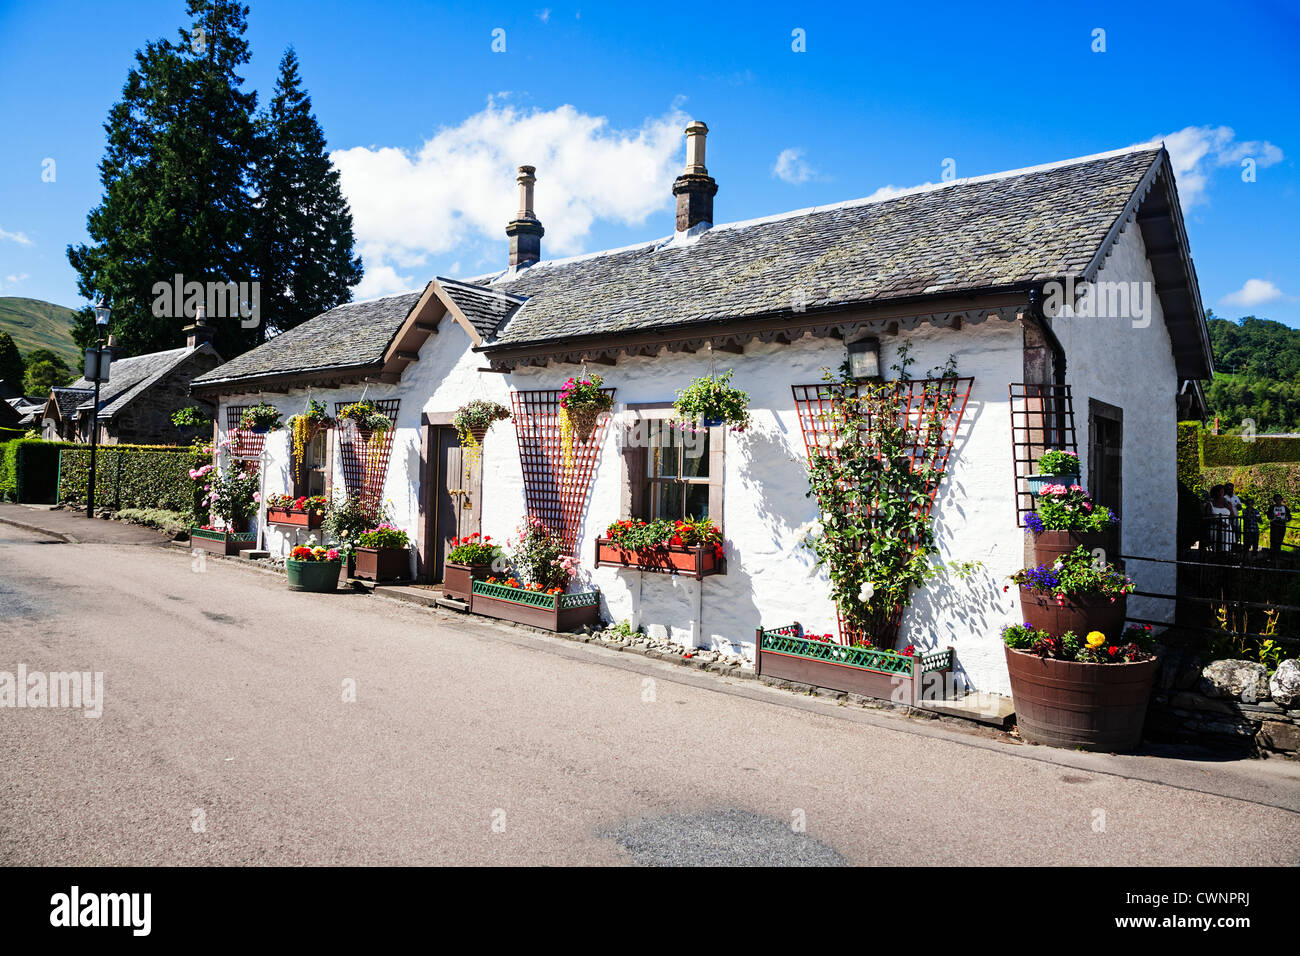 A colourful cottage in the Highland village of Luss, Scotland. - Stock Image